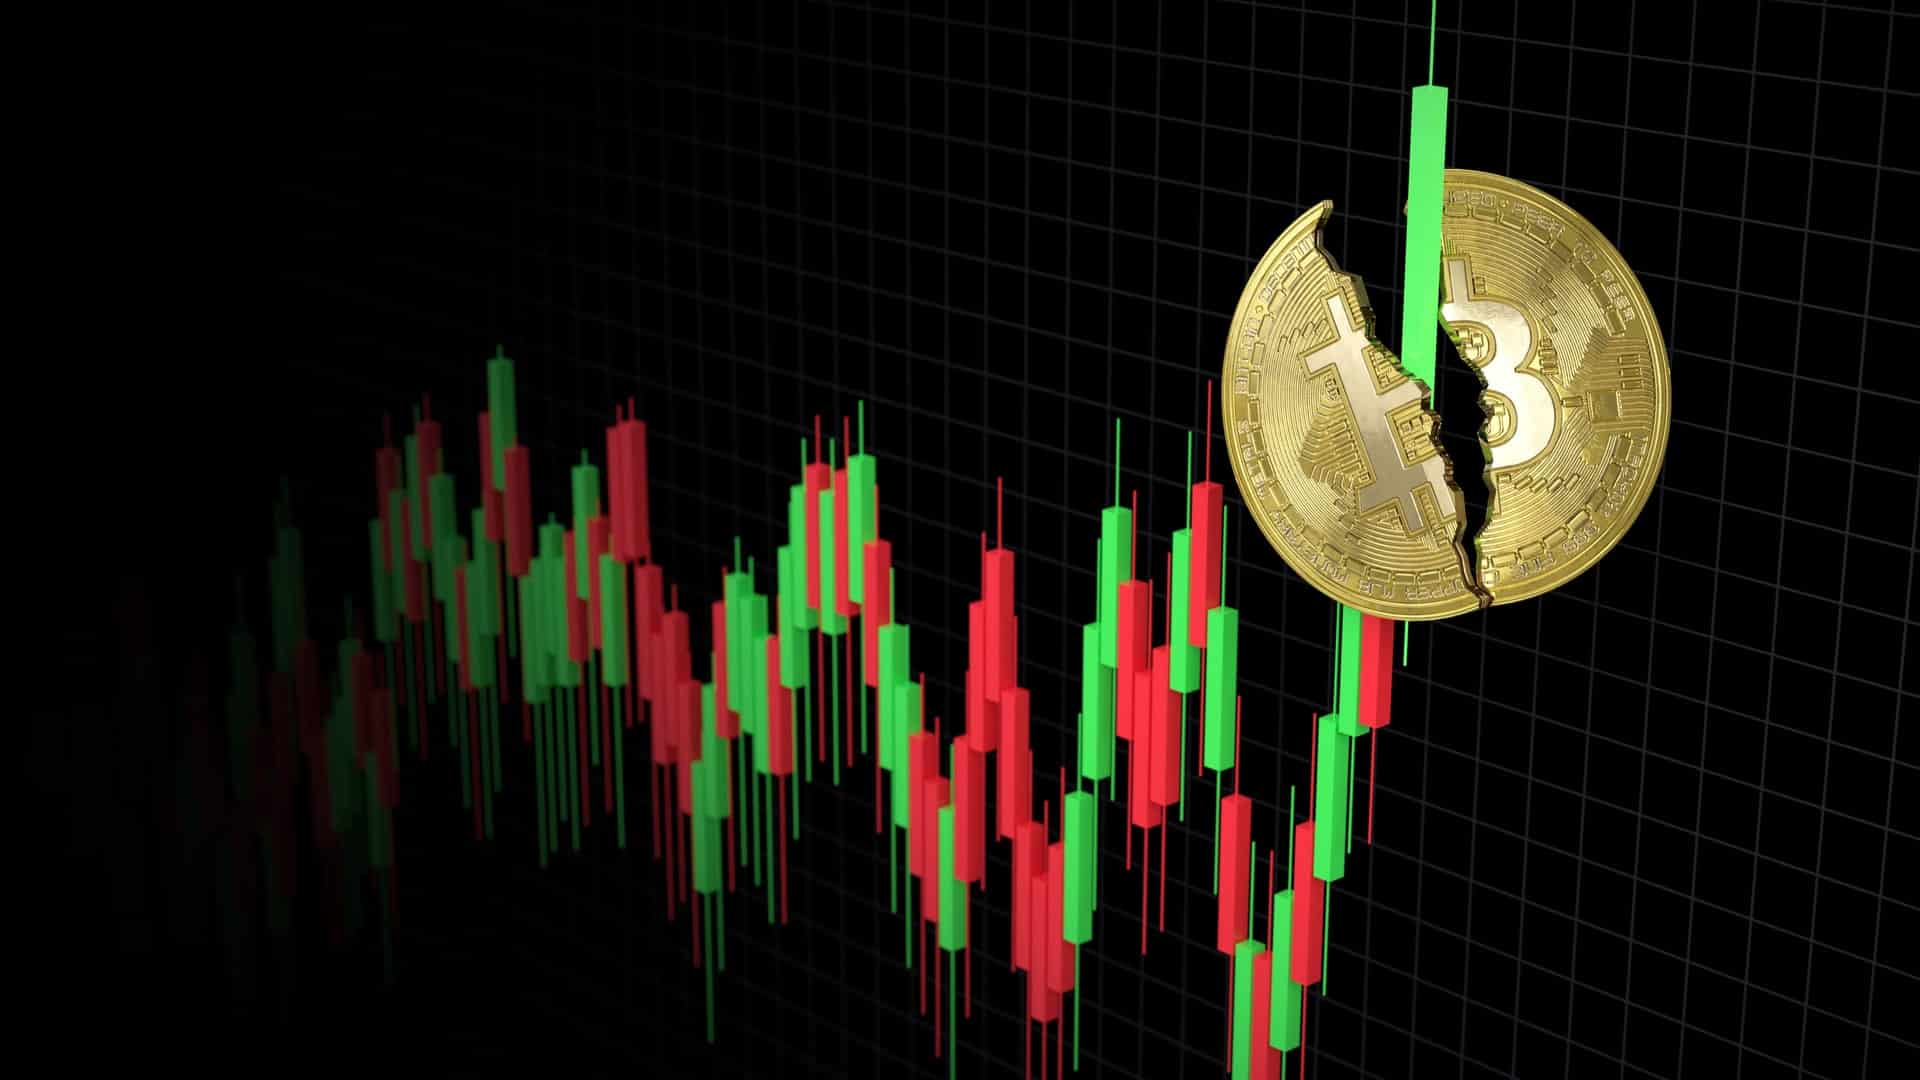 BTC analysis – just overcome the last resistance on the way to ATH